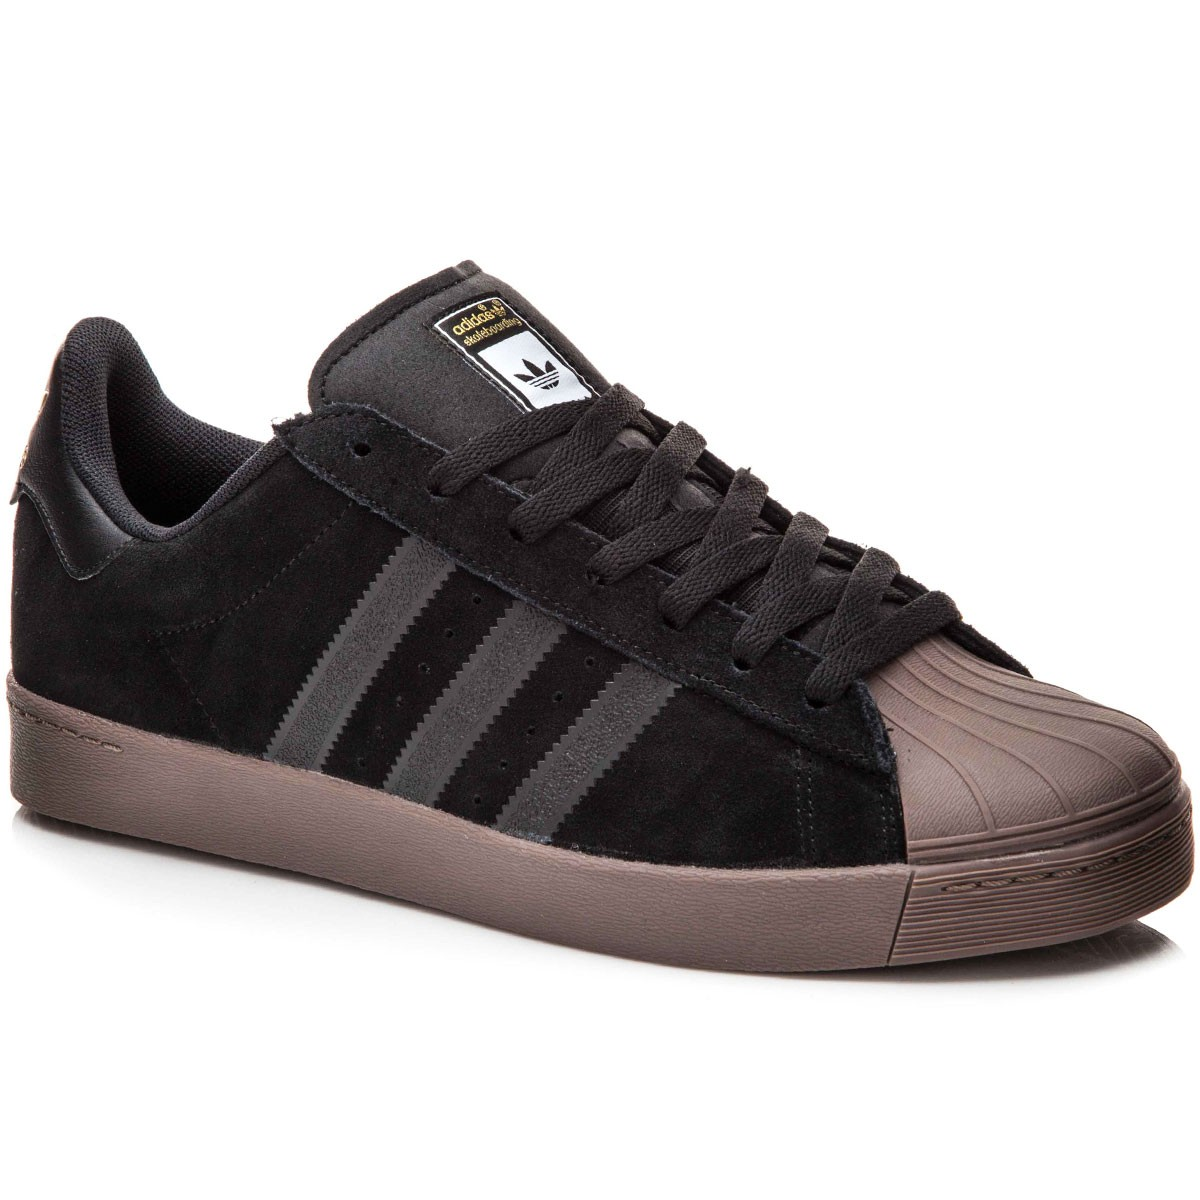 hzkda Adidas Superstar Black And Metallic potassiumstore.co.uk